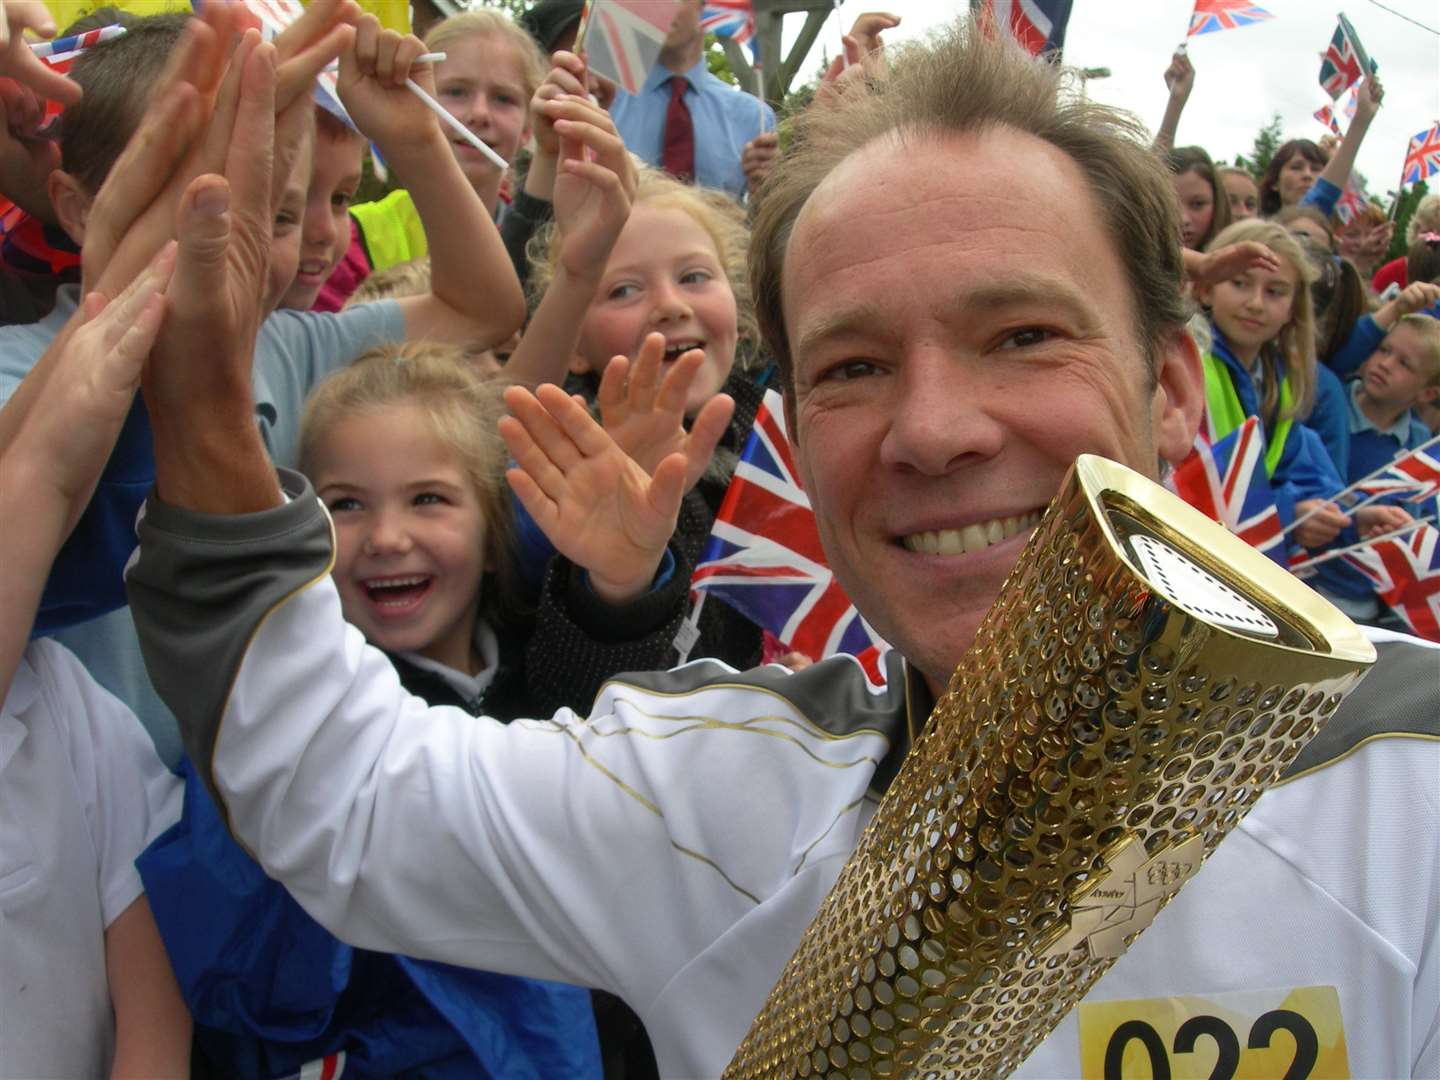 Ben Afforselles who carried the Olympic torch in his home village of Hamstreet